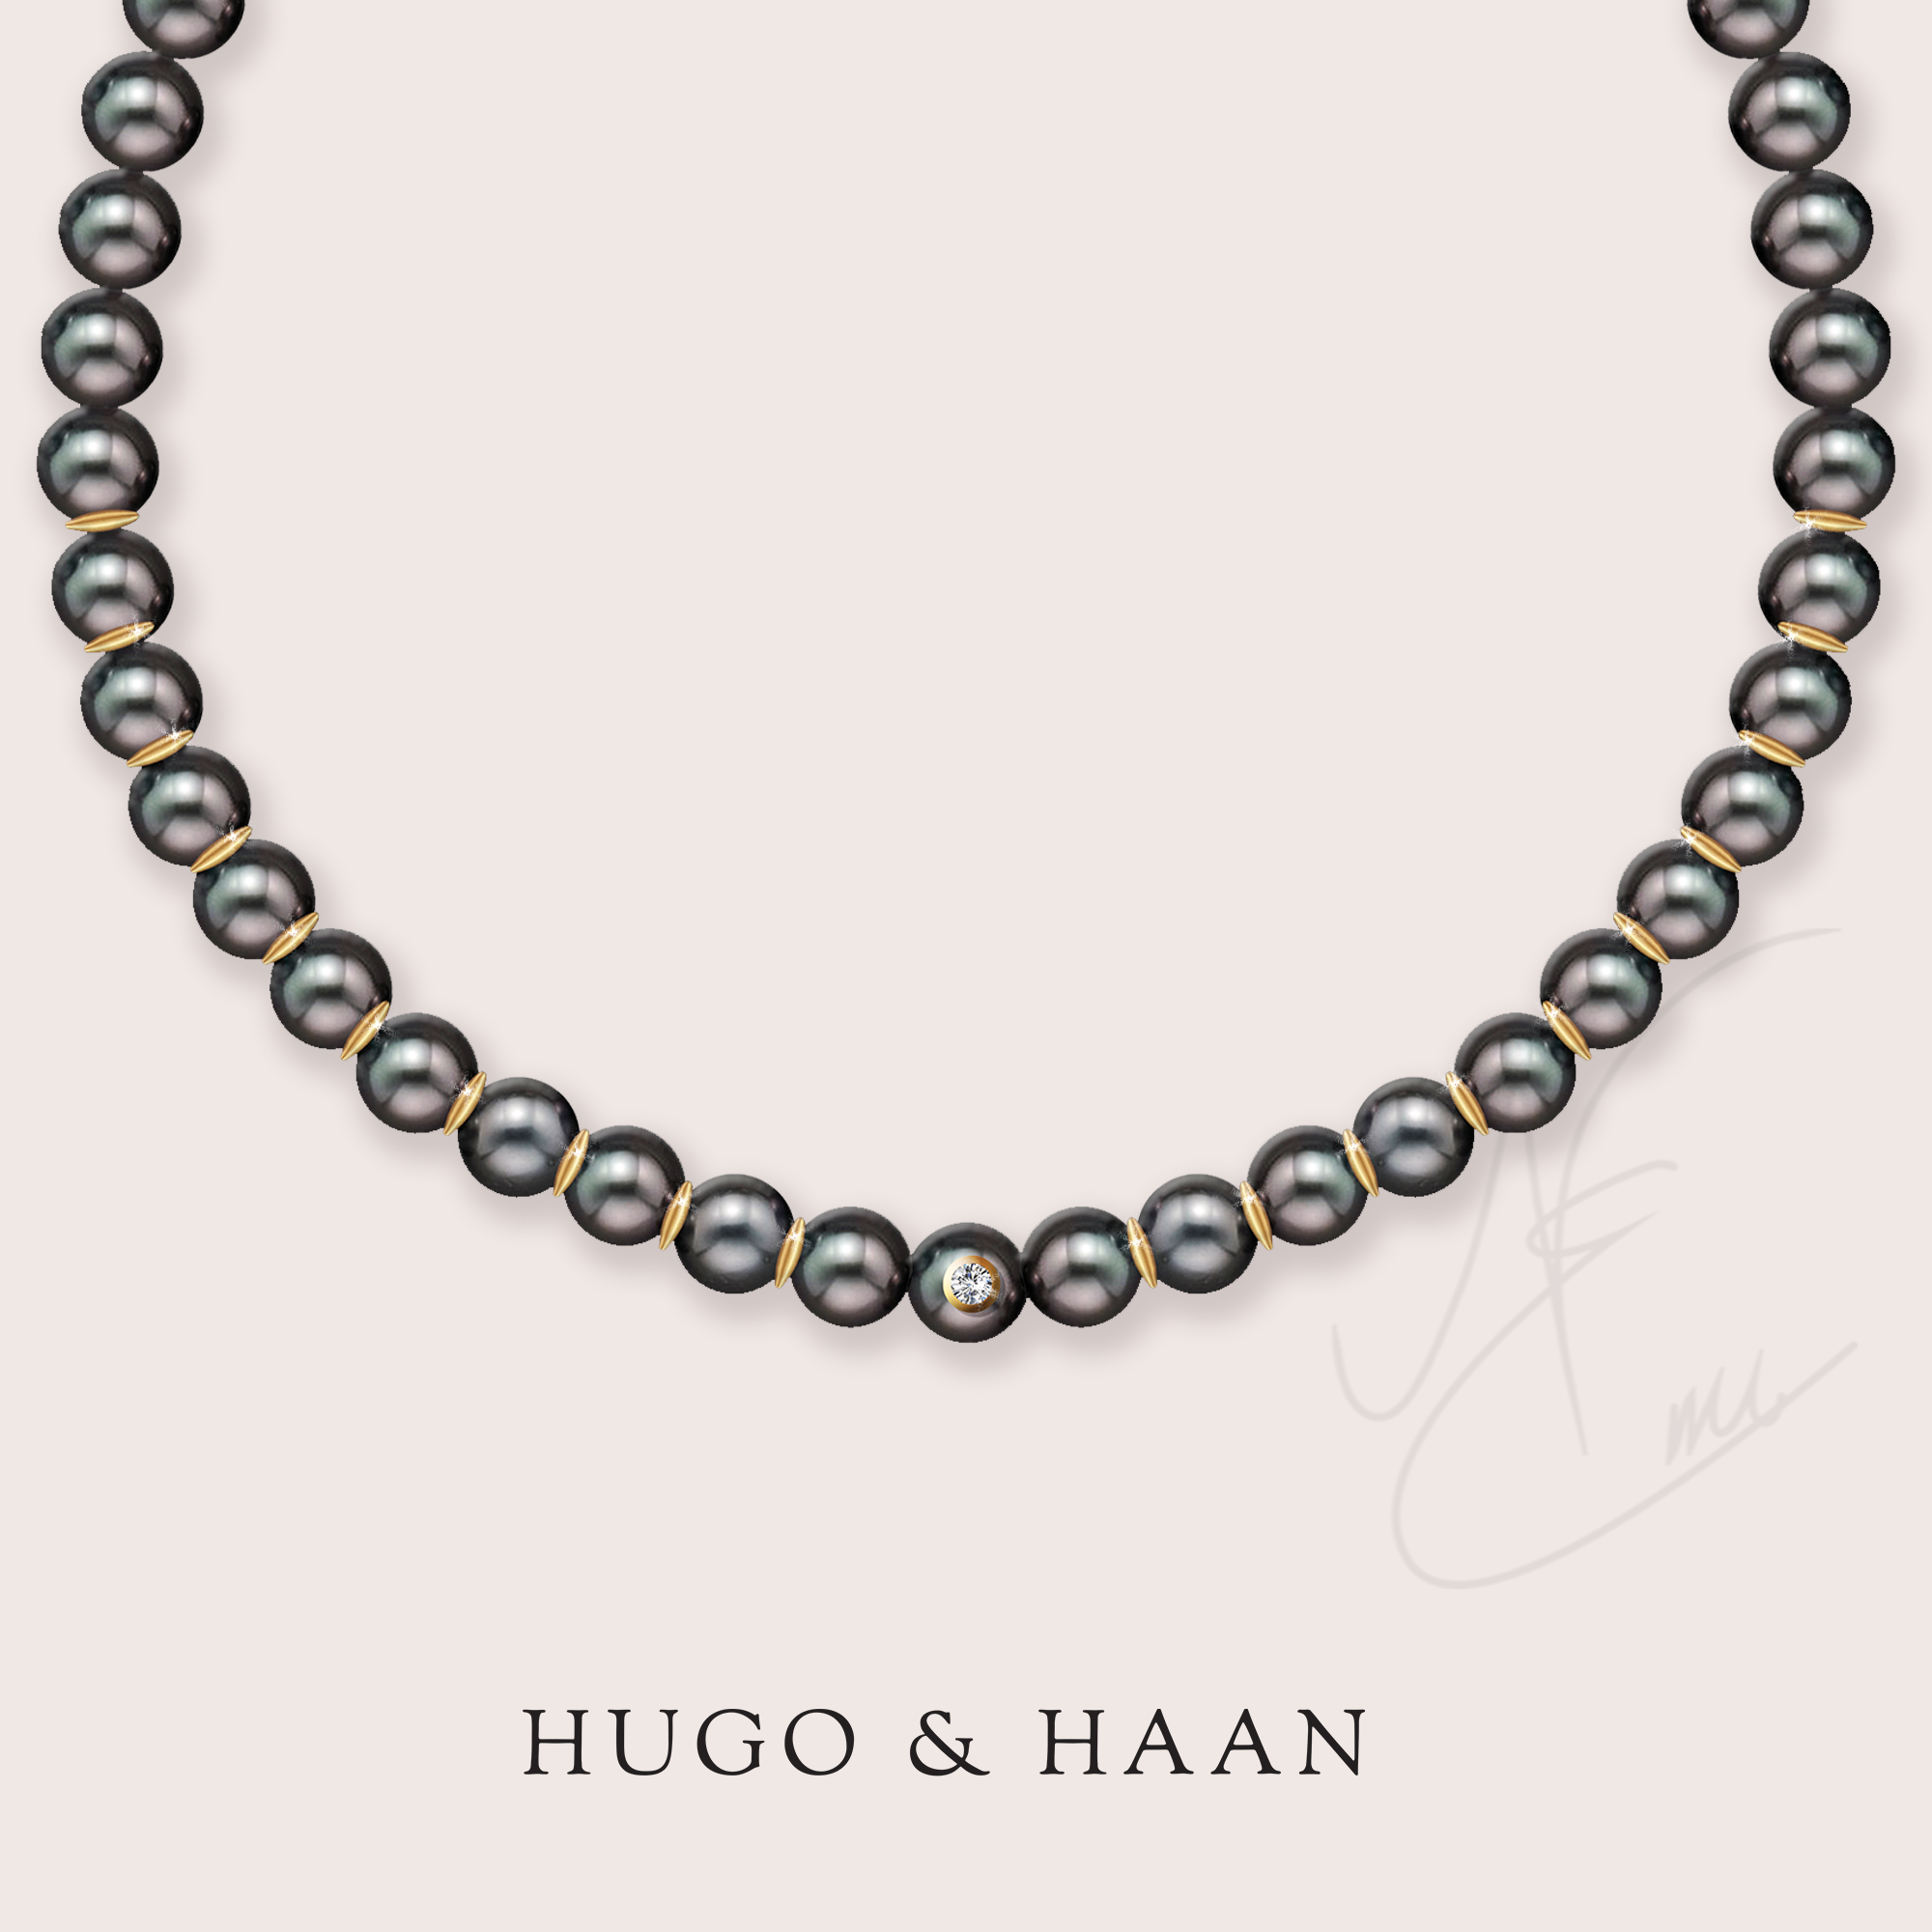 A necklace with a thought - One of our lovely clients approached us to help him design and create a beautiful Tahitian pearl necklace for his wife for a special occasion.